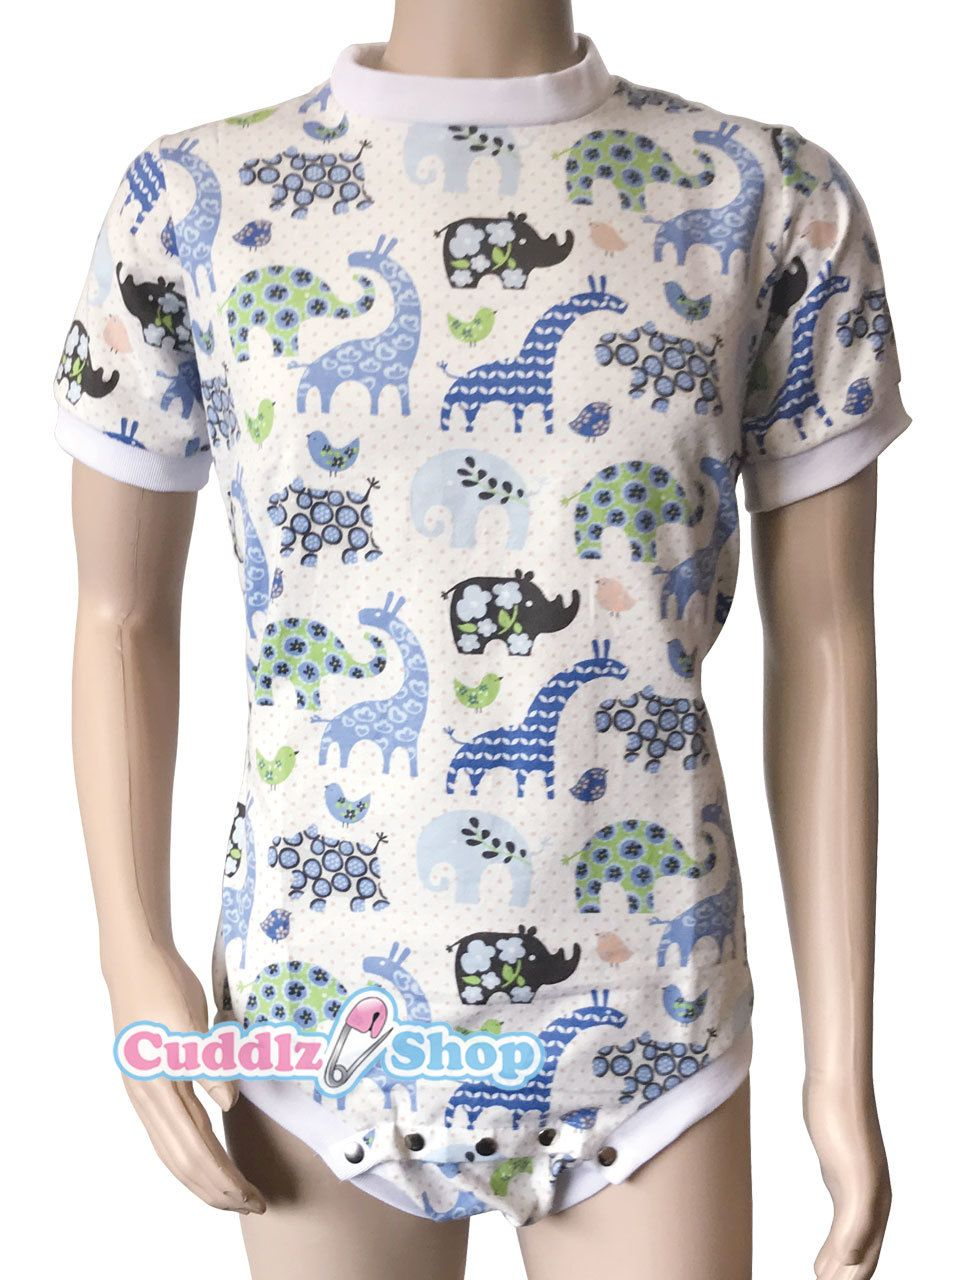 f088d4a9c9e Blue Cuddlz Colourful Safari Animal Pattern Cotton onesie for adults ABDL  Adult Baby Body Suit